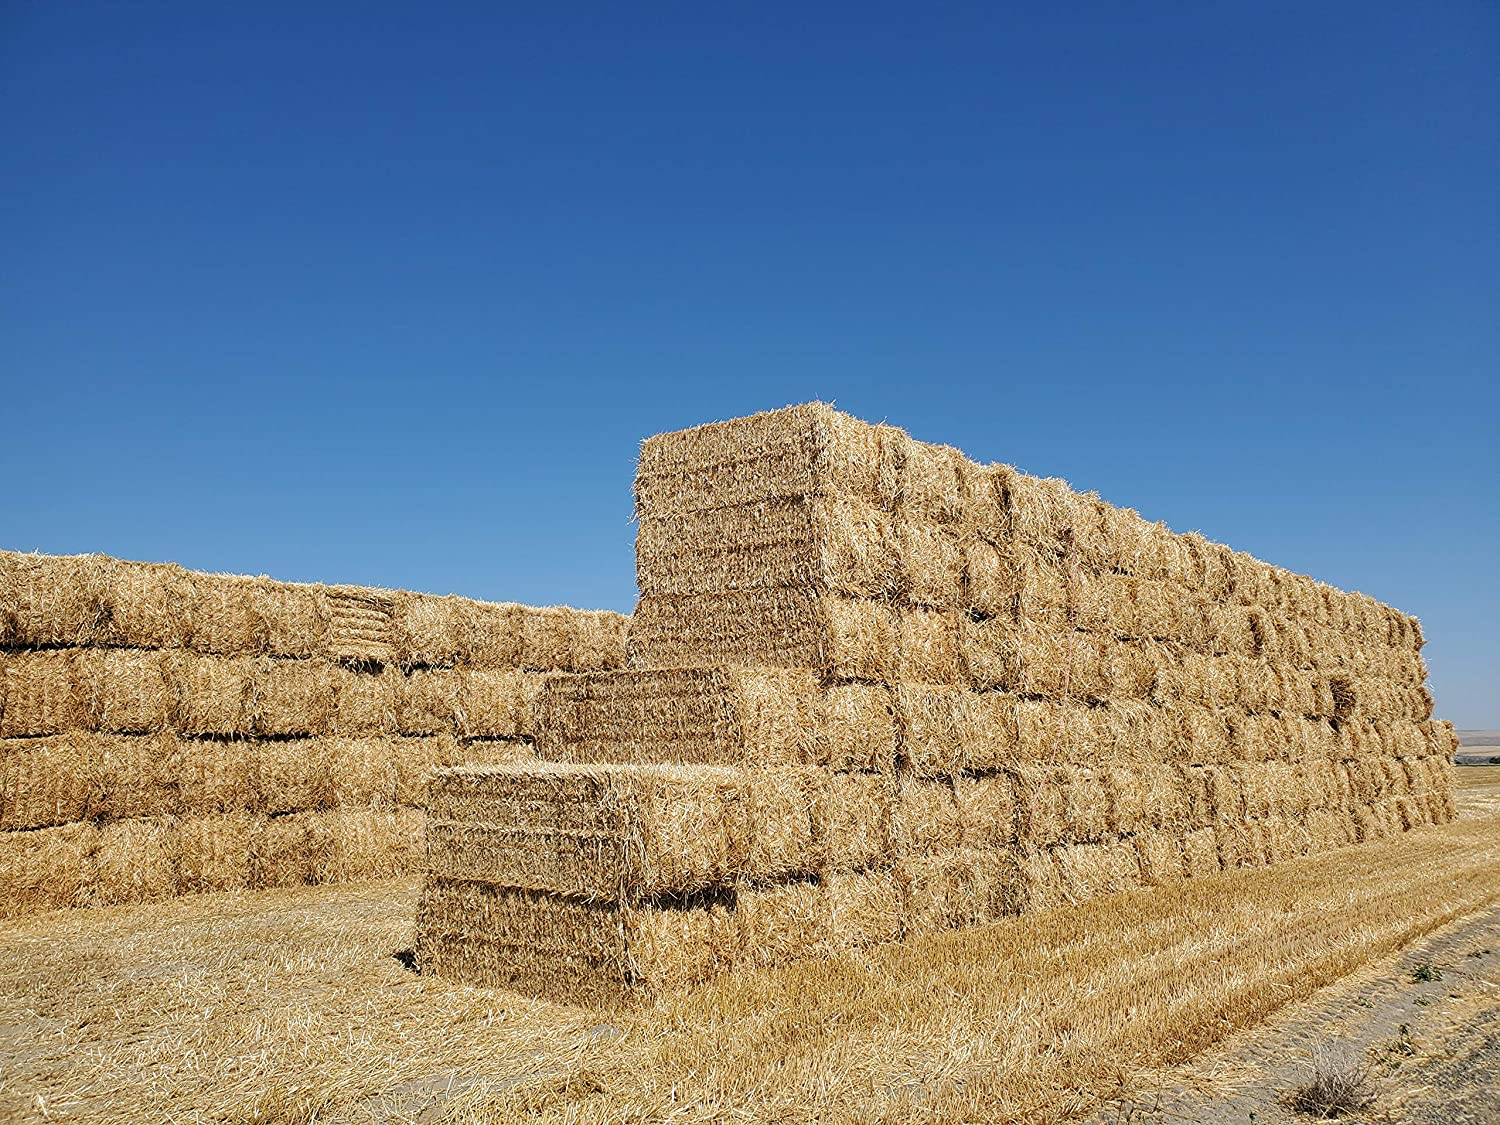 {New Harvest} Premium 100% Natural Max 42% OFF Harvested Straw 2 OFFer Wheat Grass